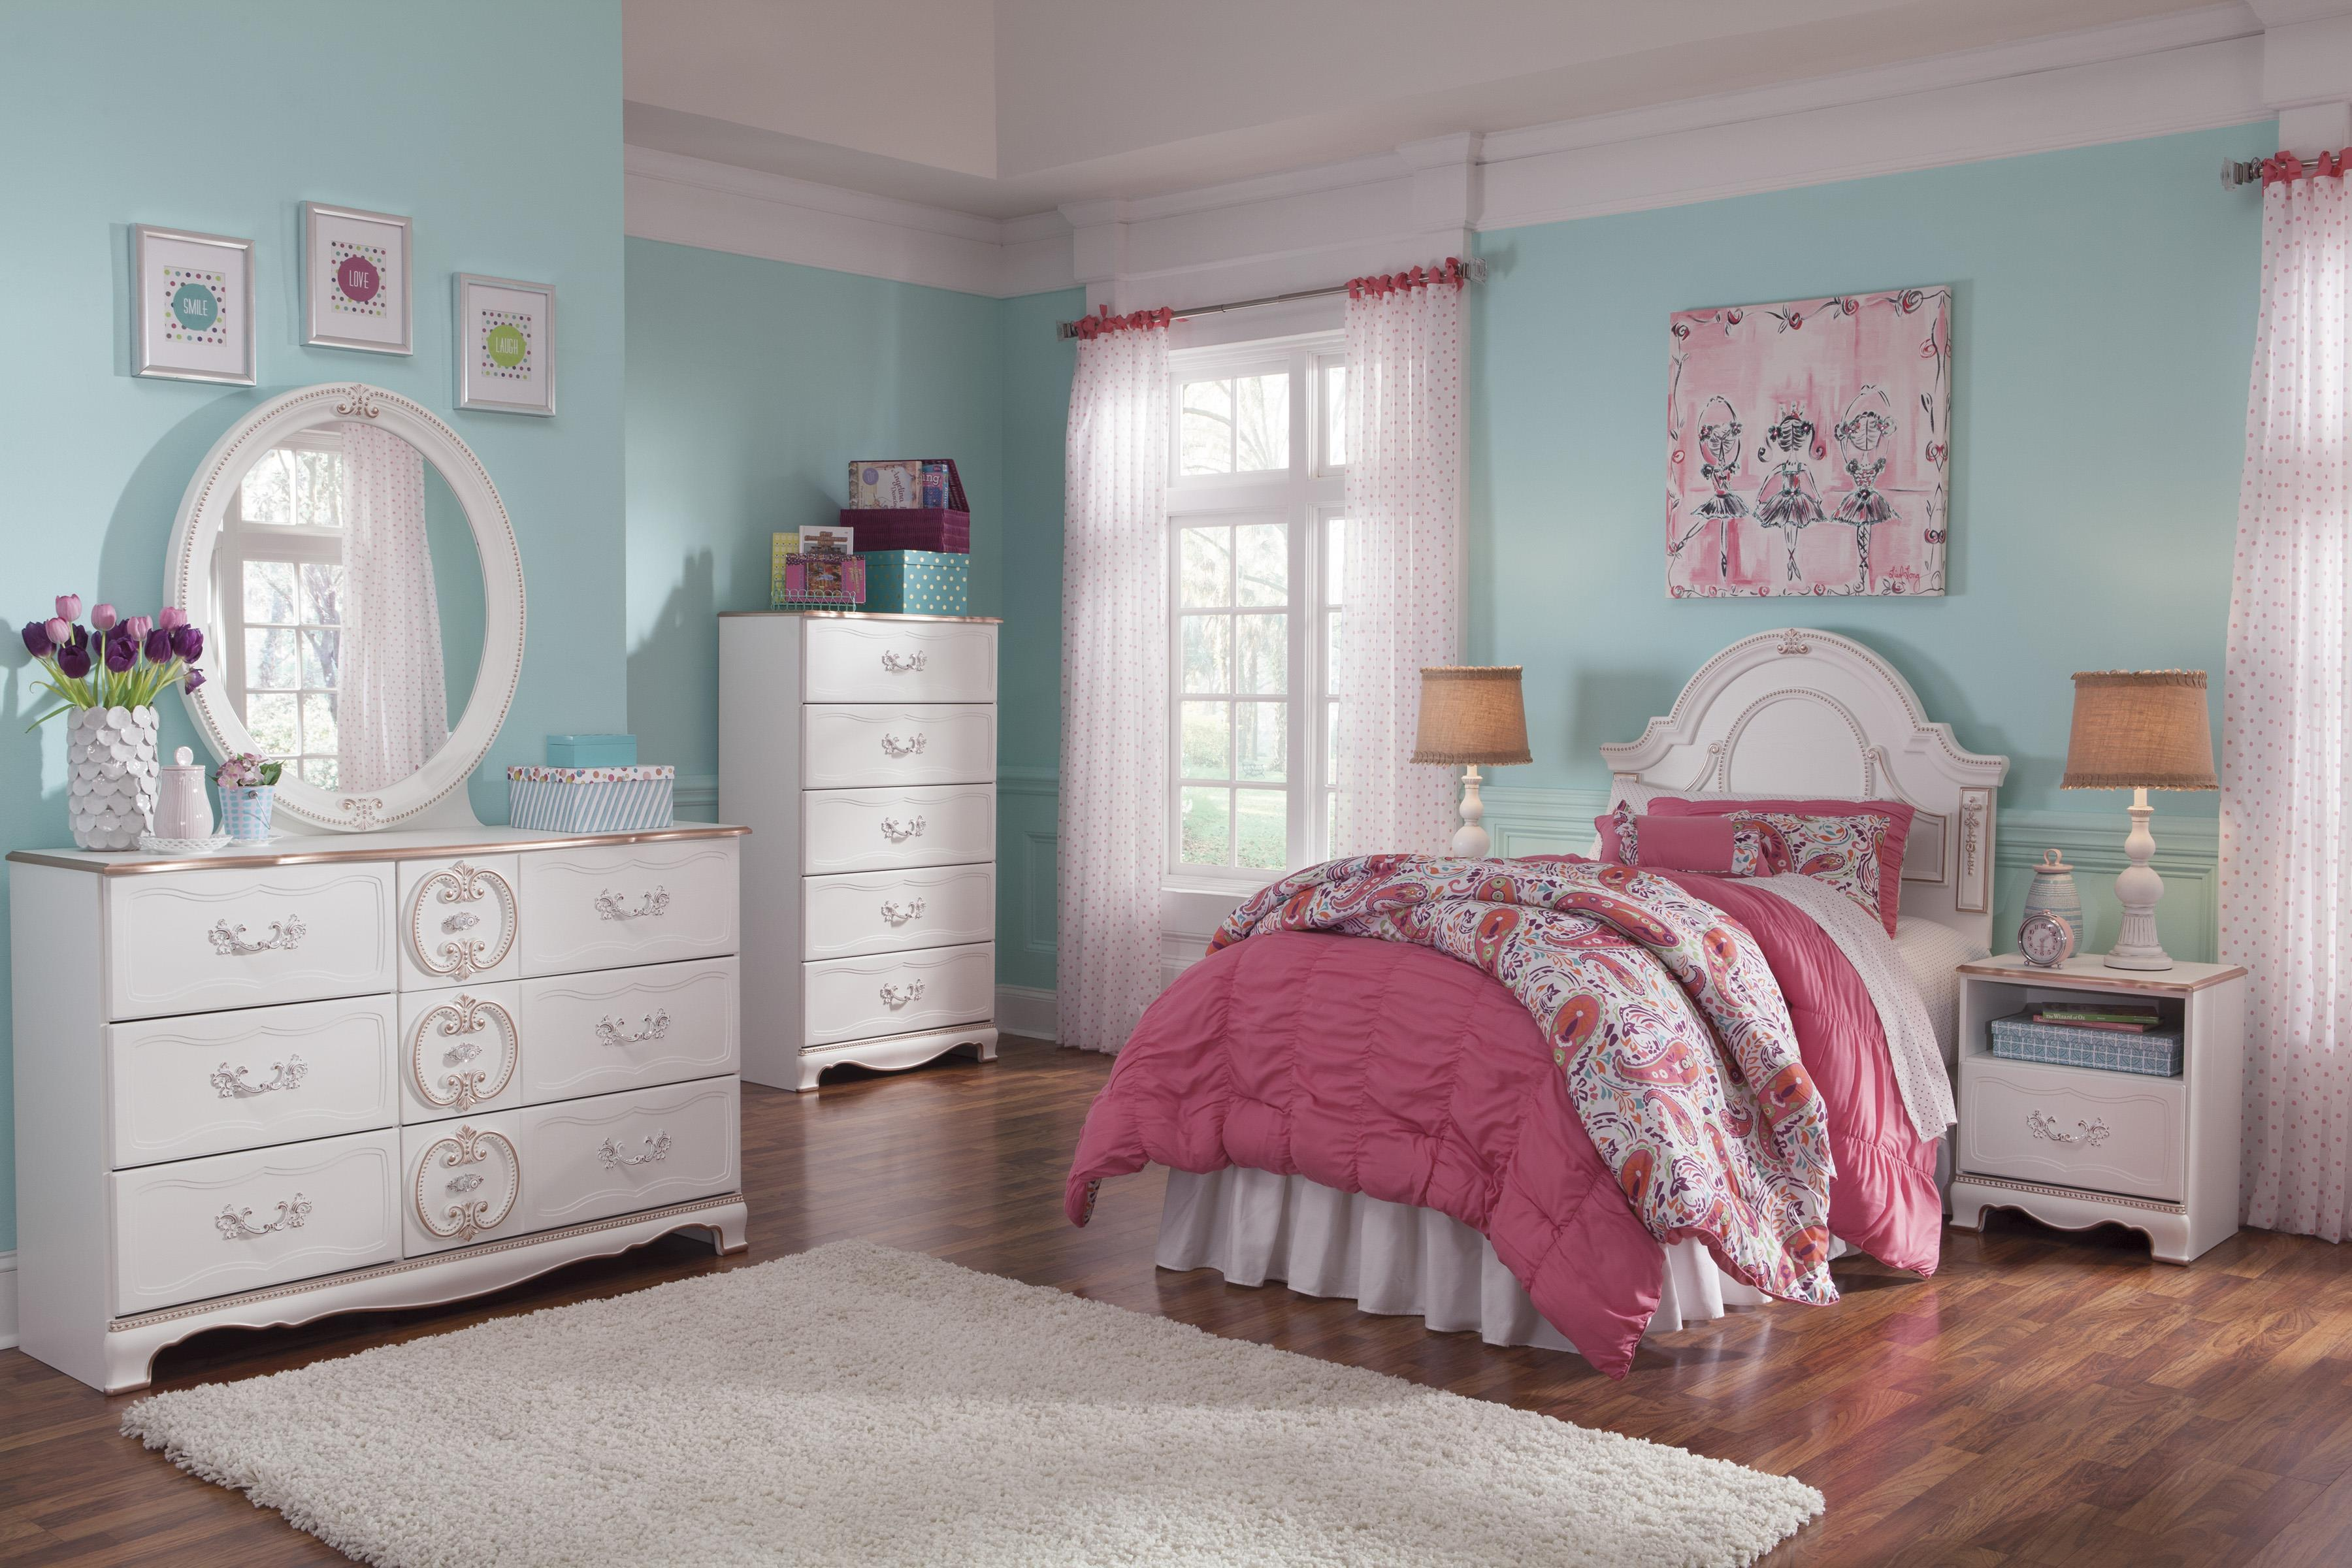 Signature Design by Ashley Korabella Twin Bedroom Group - Item Number: B355 T Bedroom Group 2